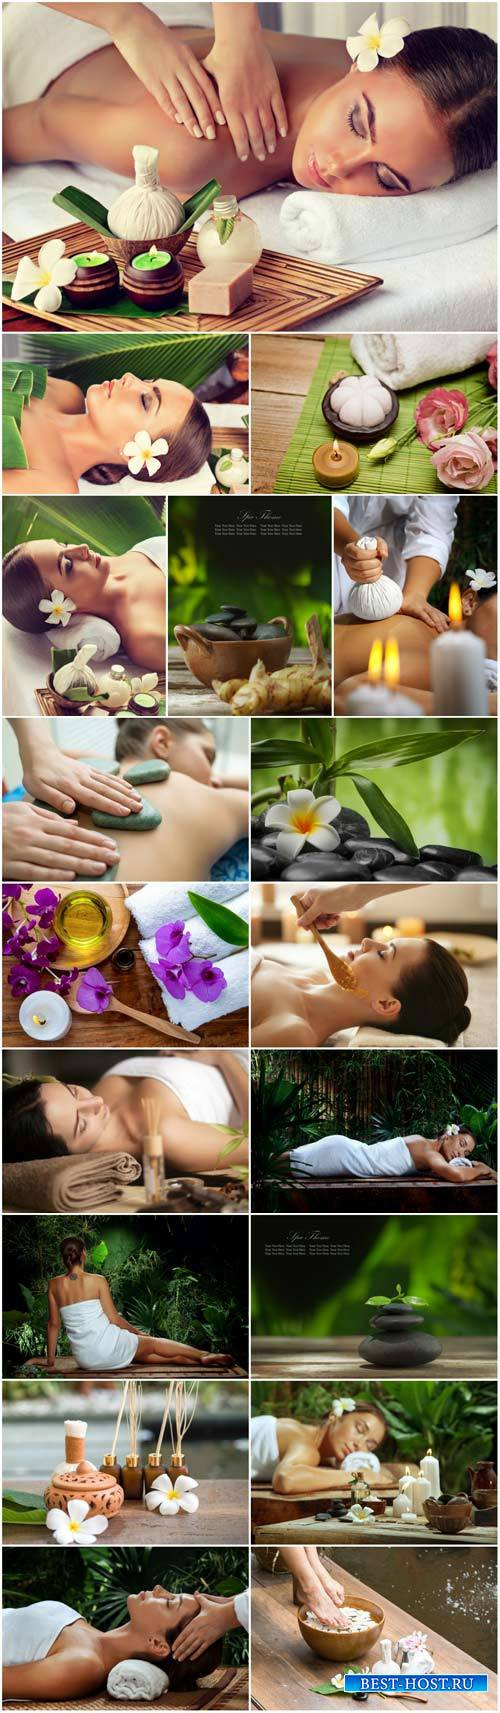 Spa concept, female face, woman having relaxing in spa massage salon